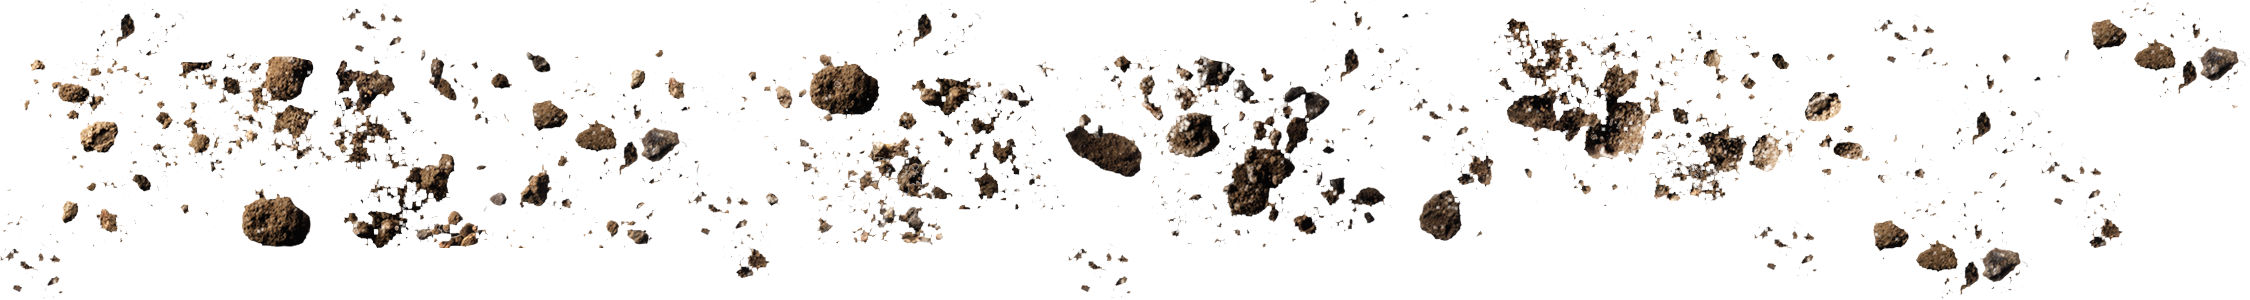 asteroid sprite wall - photo #30